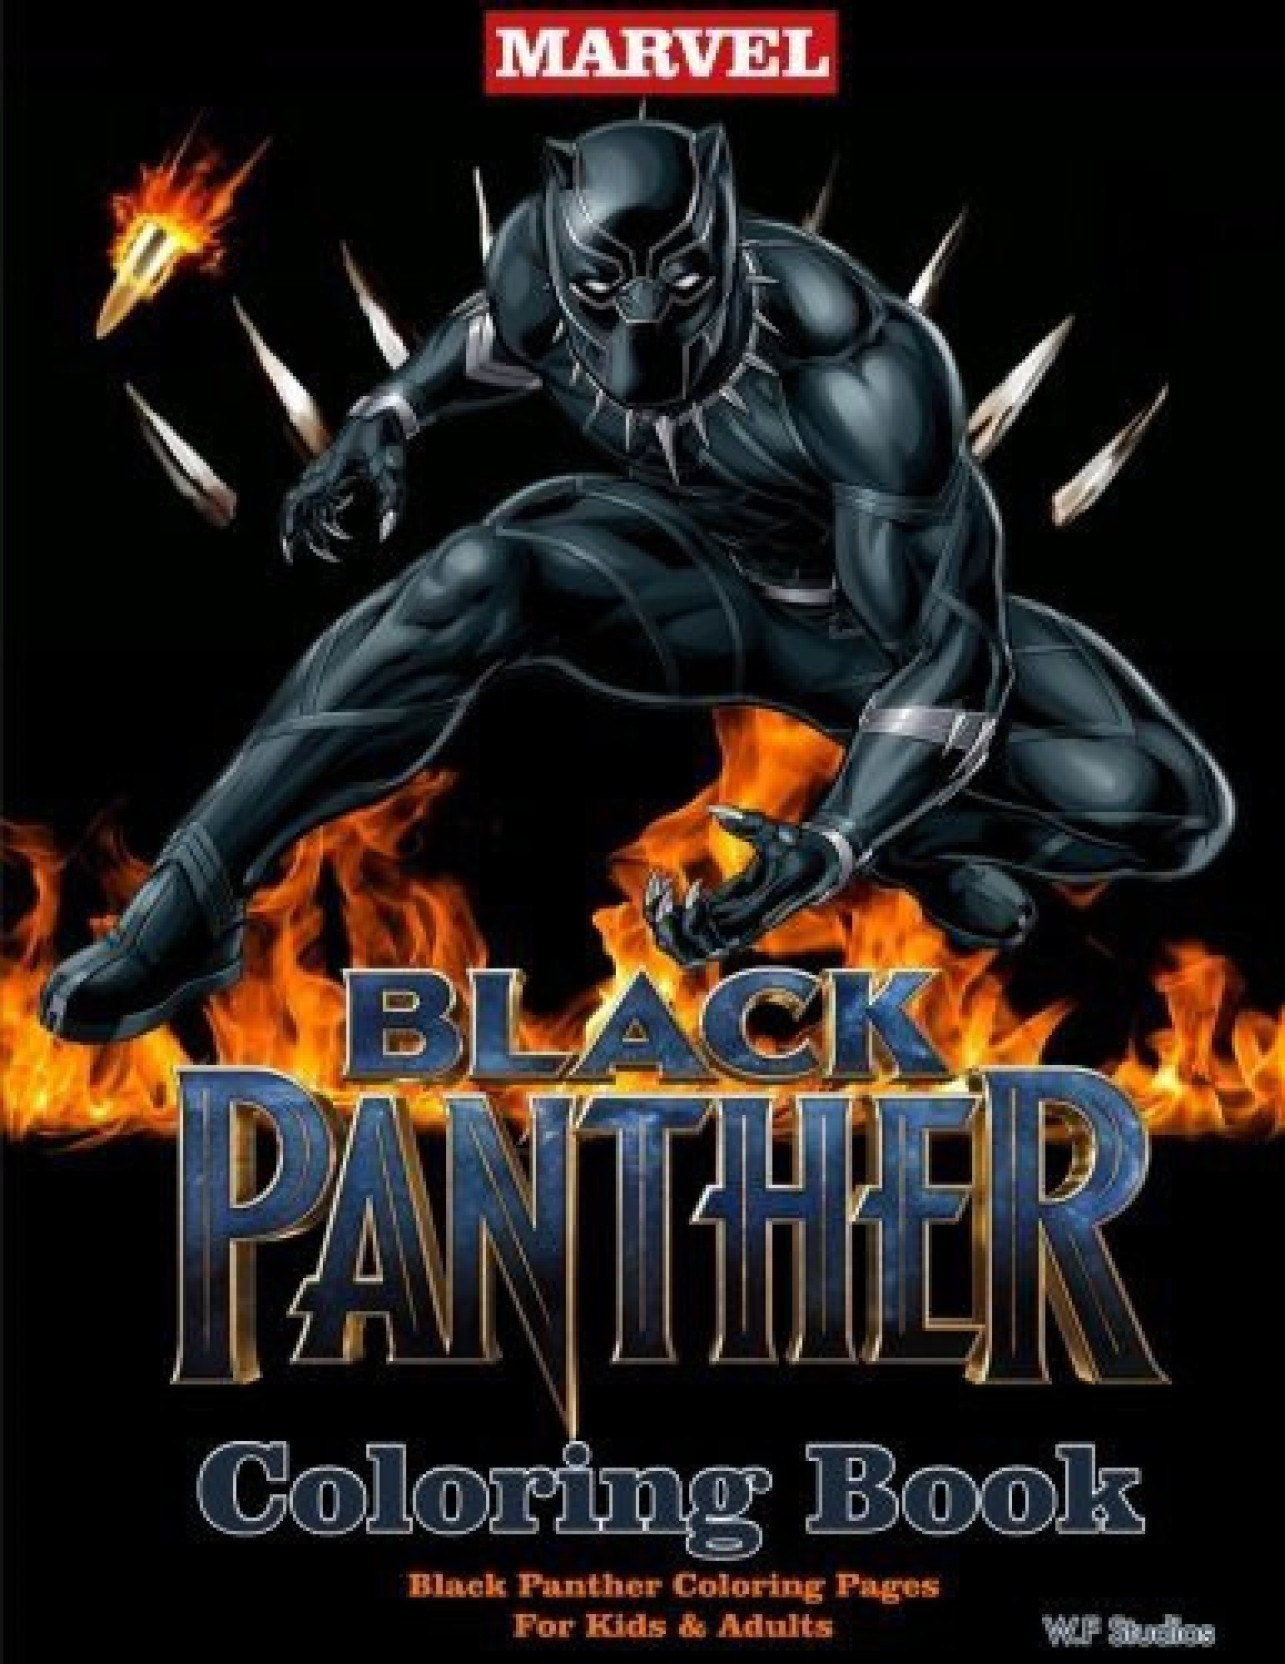 Black panther coloring pages suitable for both children adults on offer